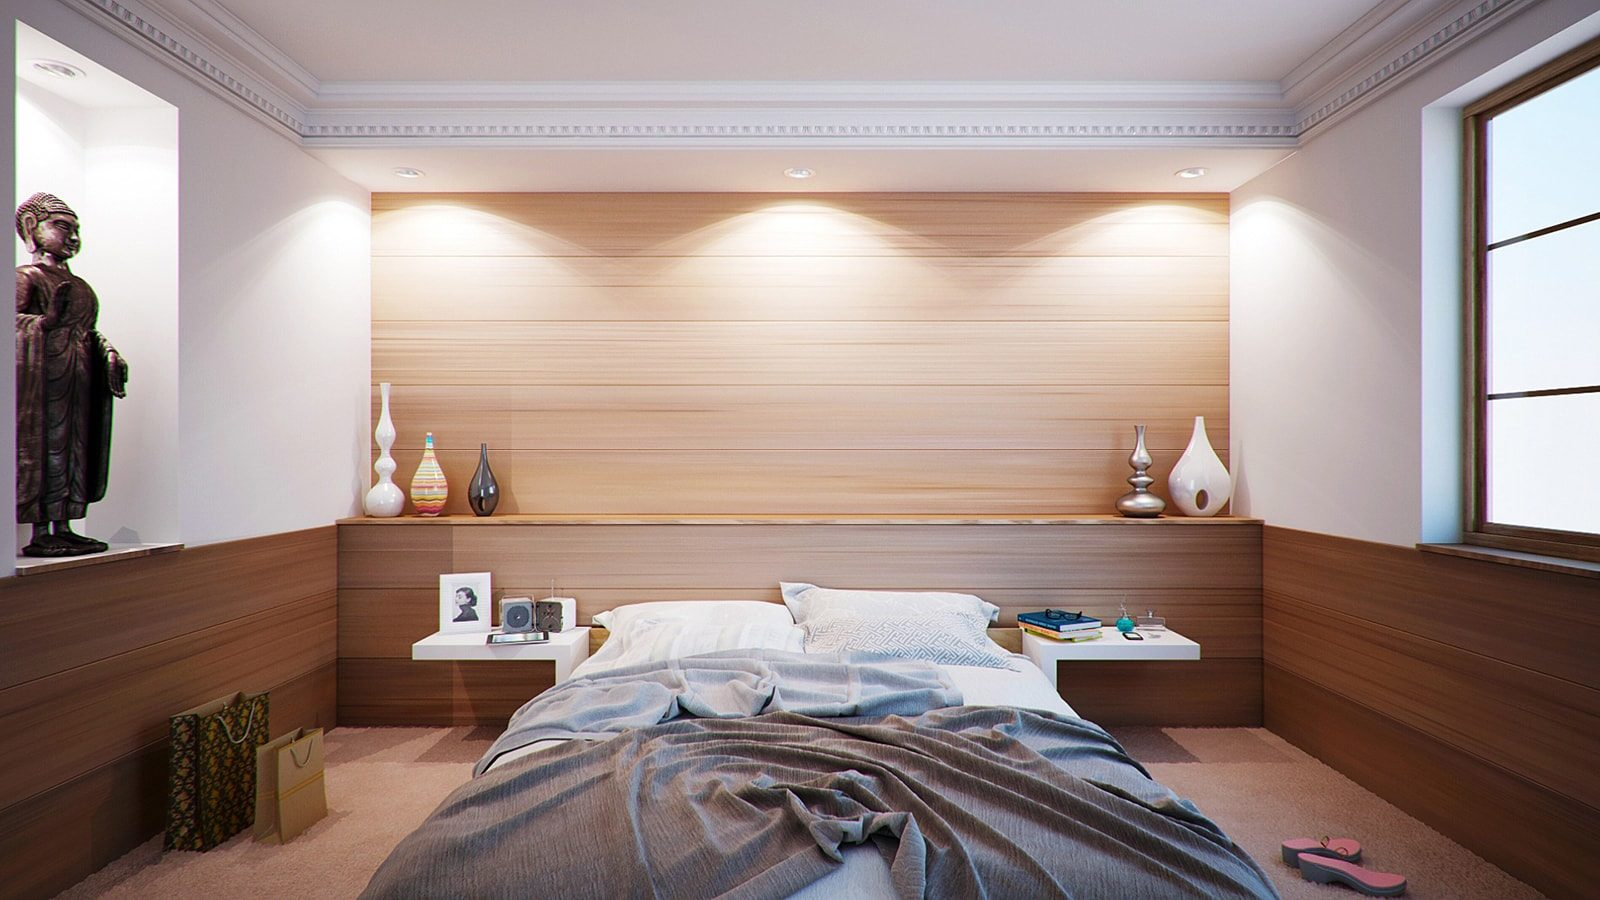 10 Fundamental Interior Design Ideas for a Relaxing and Beautiful Bedroom